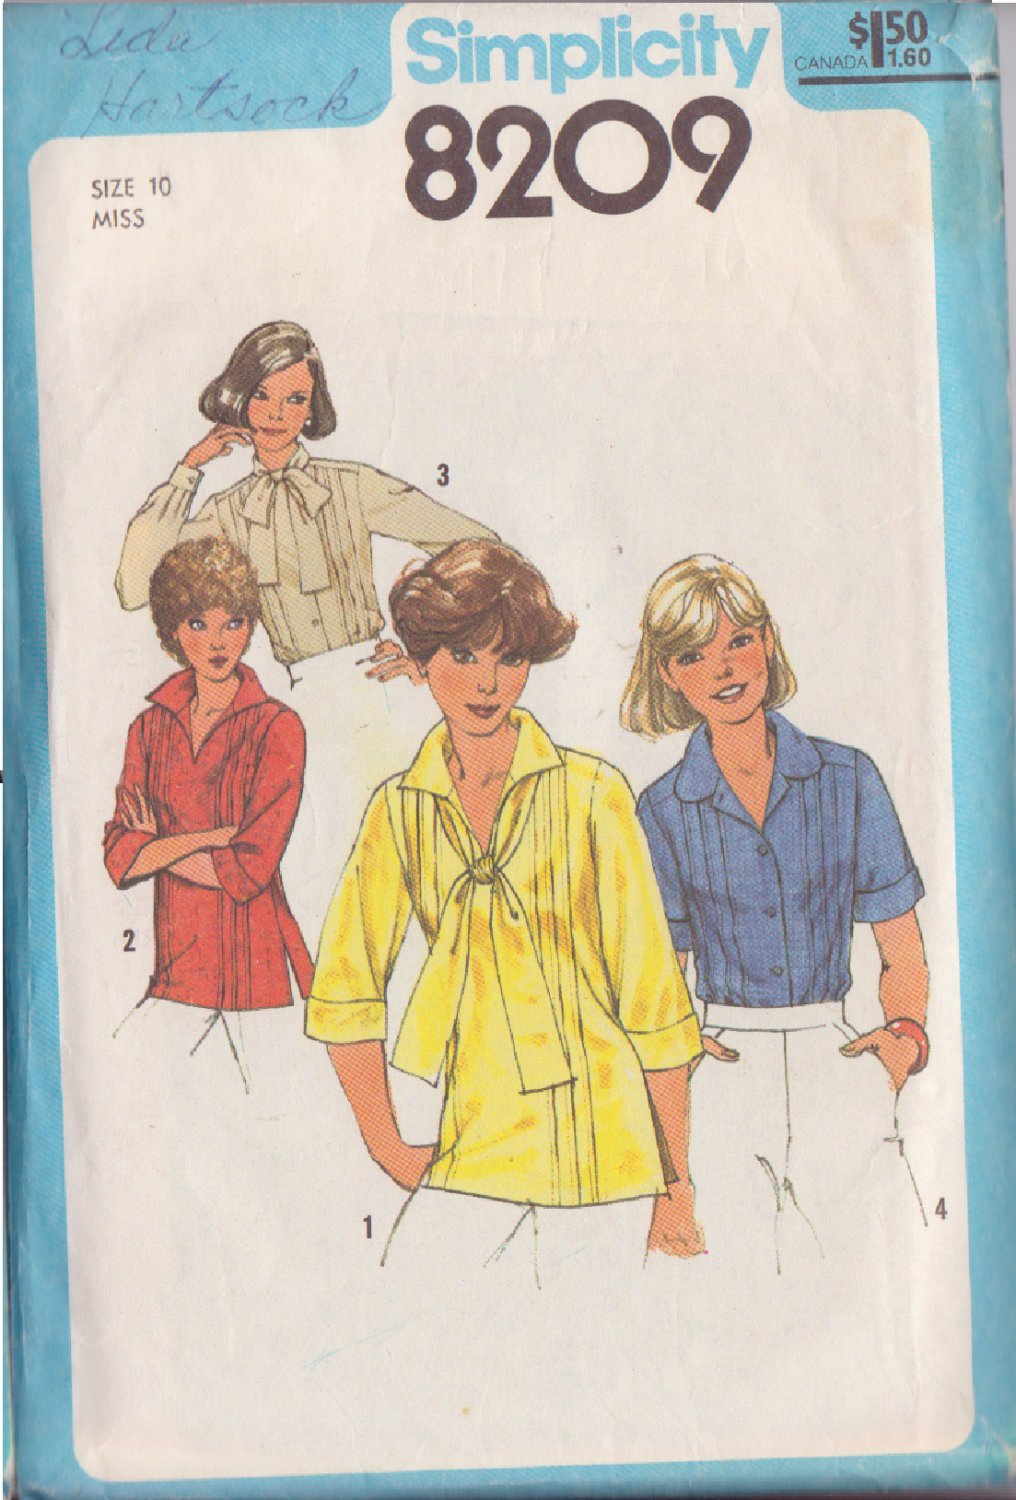 SIMPLICITY PATTERN 8209 MISSES' BLOUSES, PULLOVER TOP 4 VARIATIONS SIZE 10